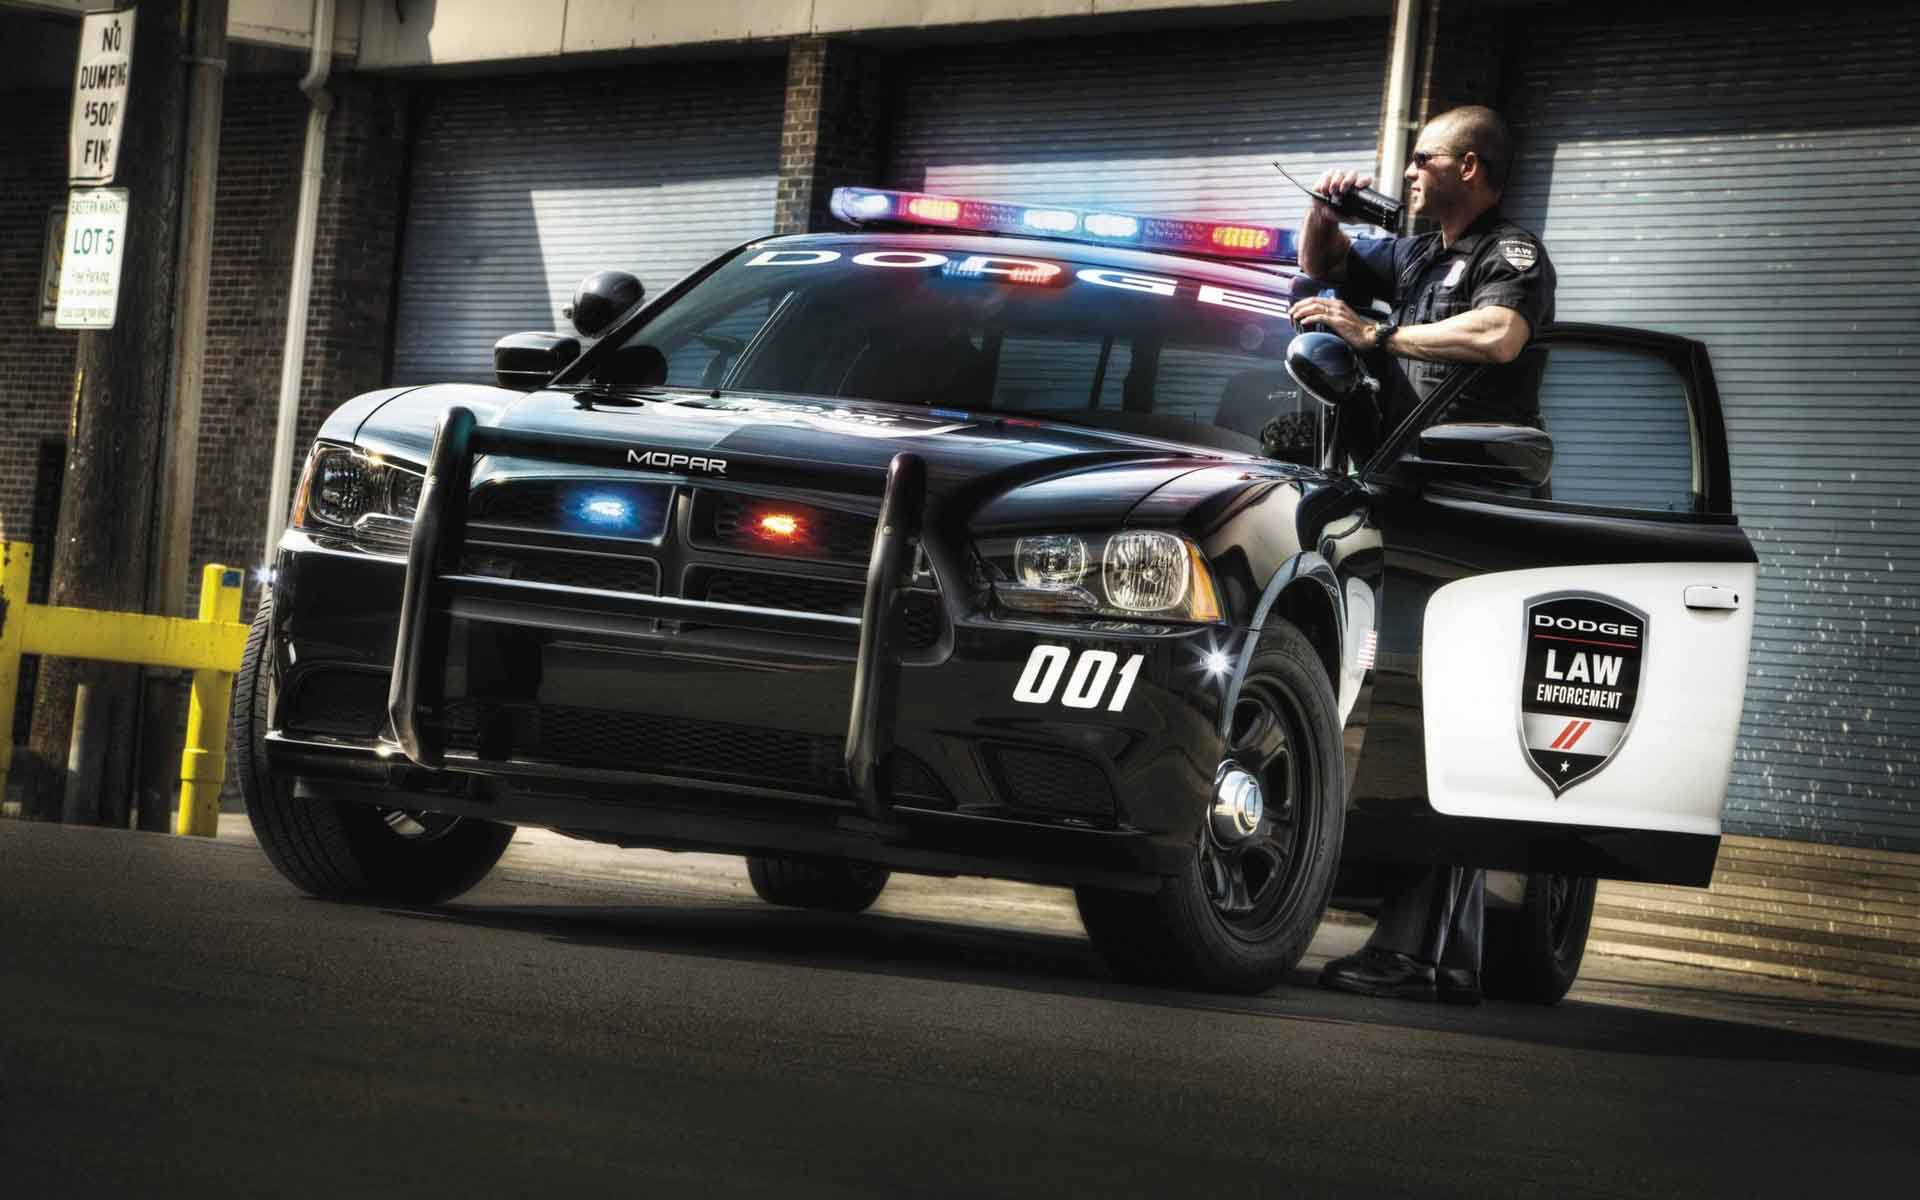 HD Police Wallpapers